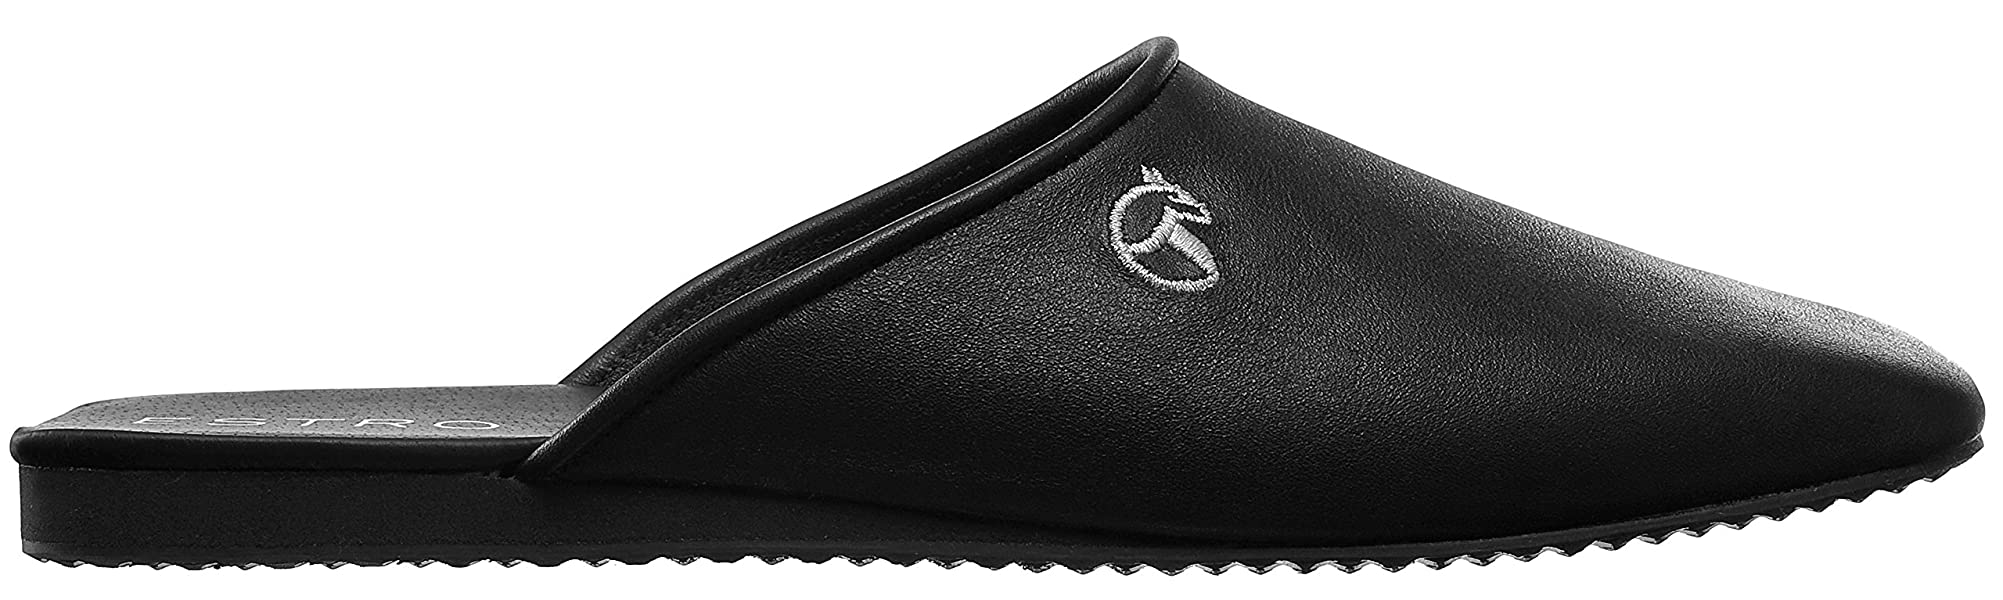 Mens Bedroom Slippers Leather Amazoncom Estro President Mens Luxury Leather House Slippers 8